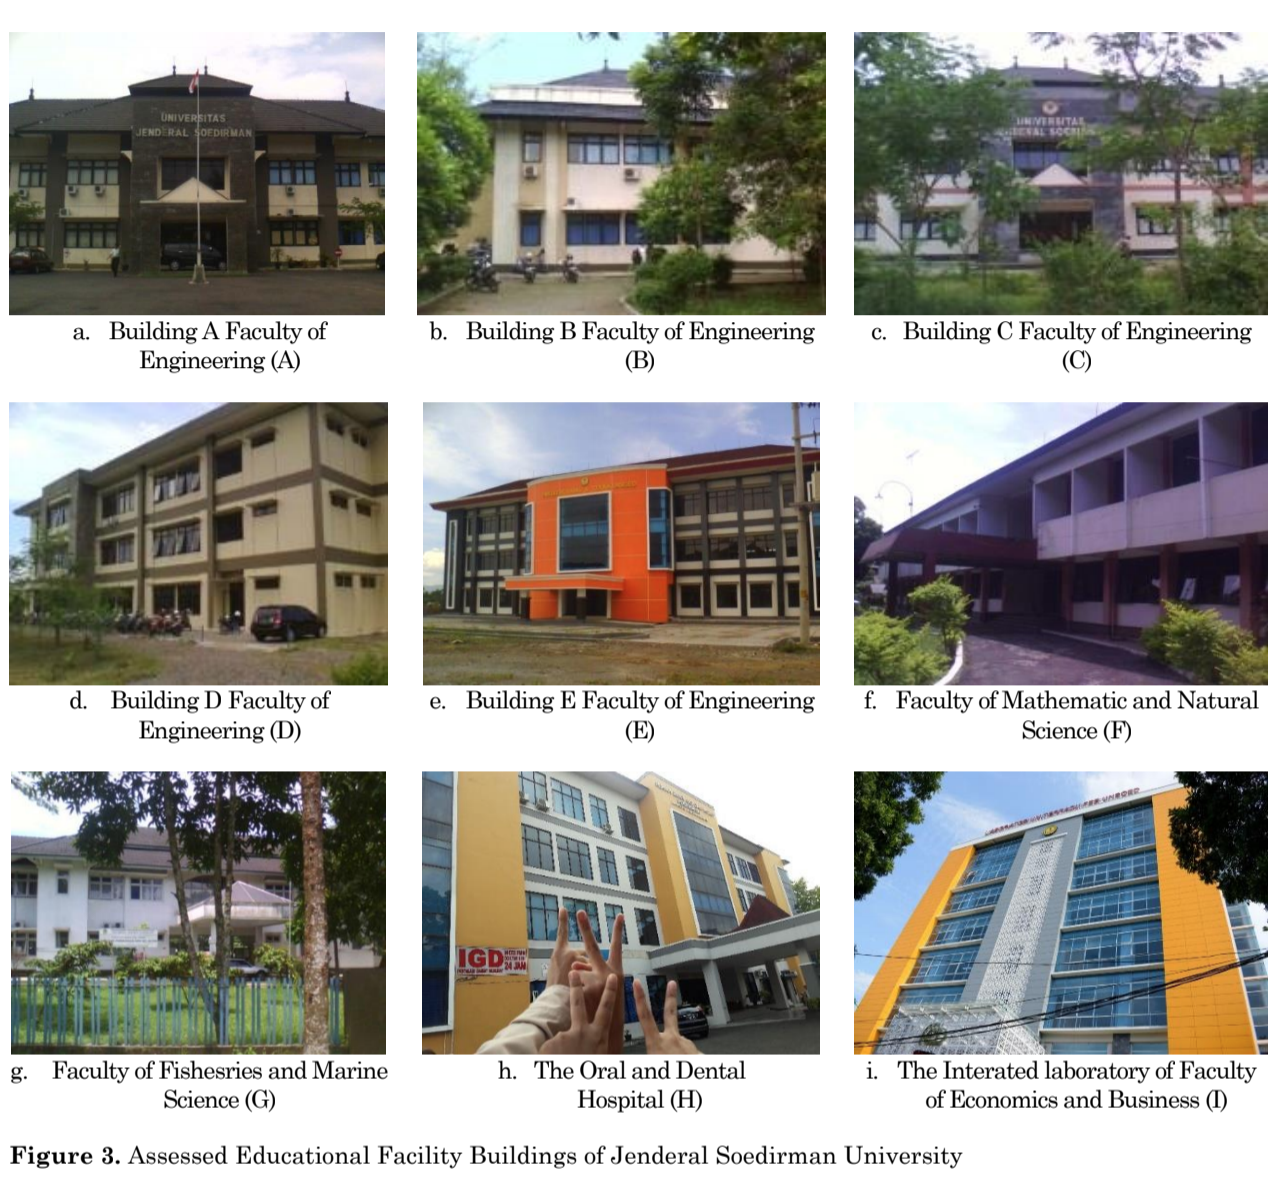 Seismic Vulnerability Assessment Using Rapid Visual Screening: Case Study of Educational Facility Buildings of Jenderal Soedirman  University, Indonesia